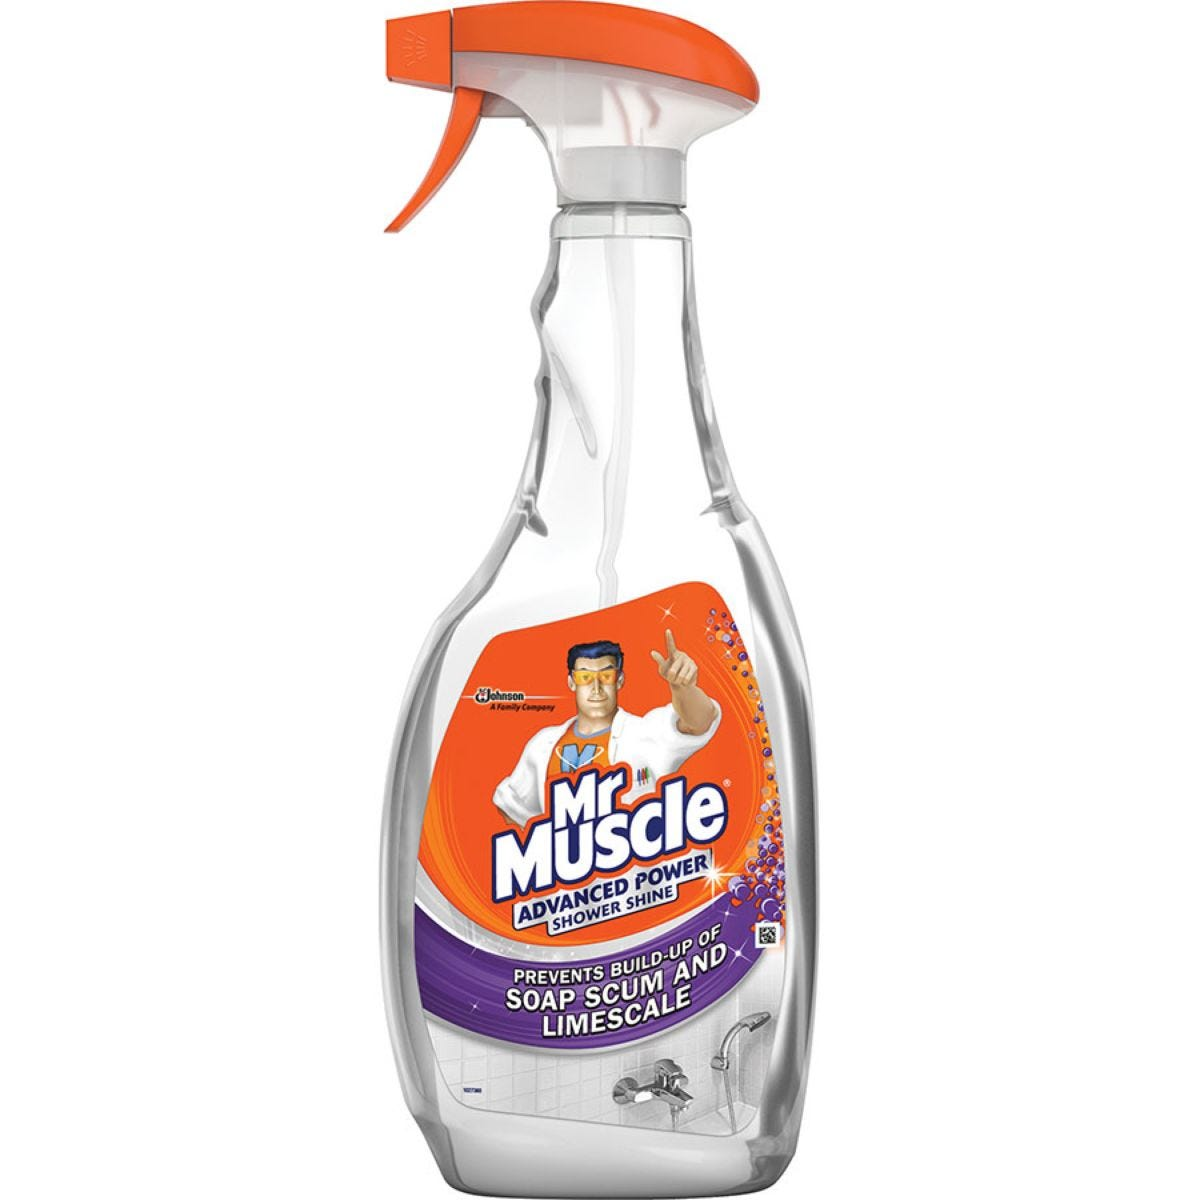 Mr Muscle 750ml Advanced Power Shower Spray